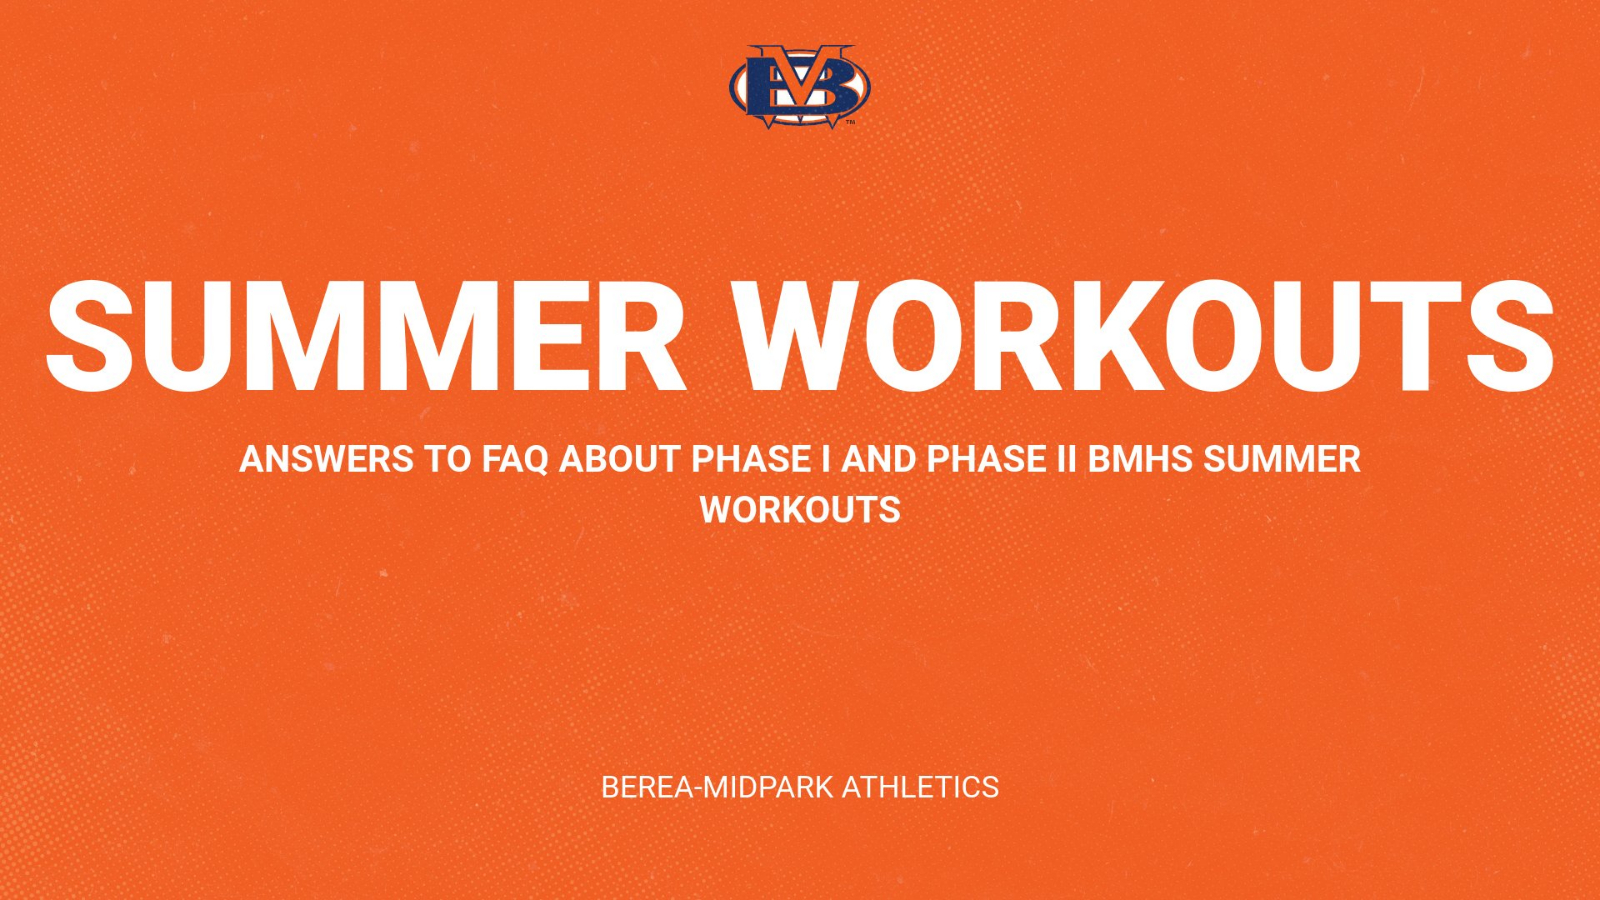 Summer Workouts and Phase II Frequently Asked Questions